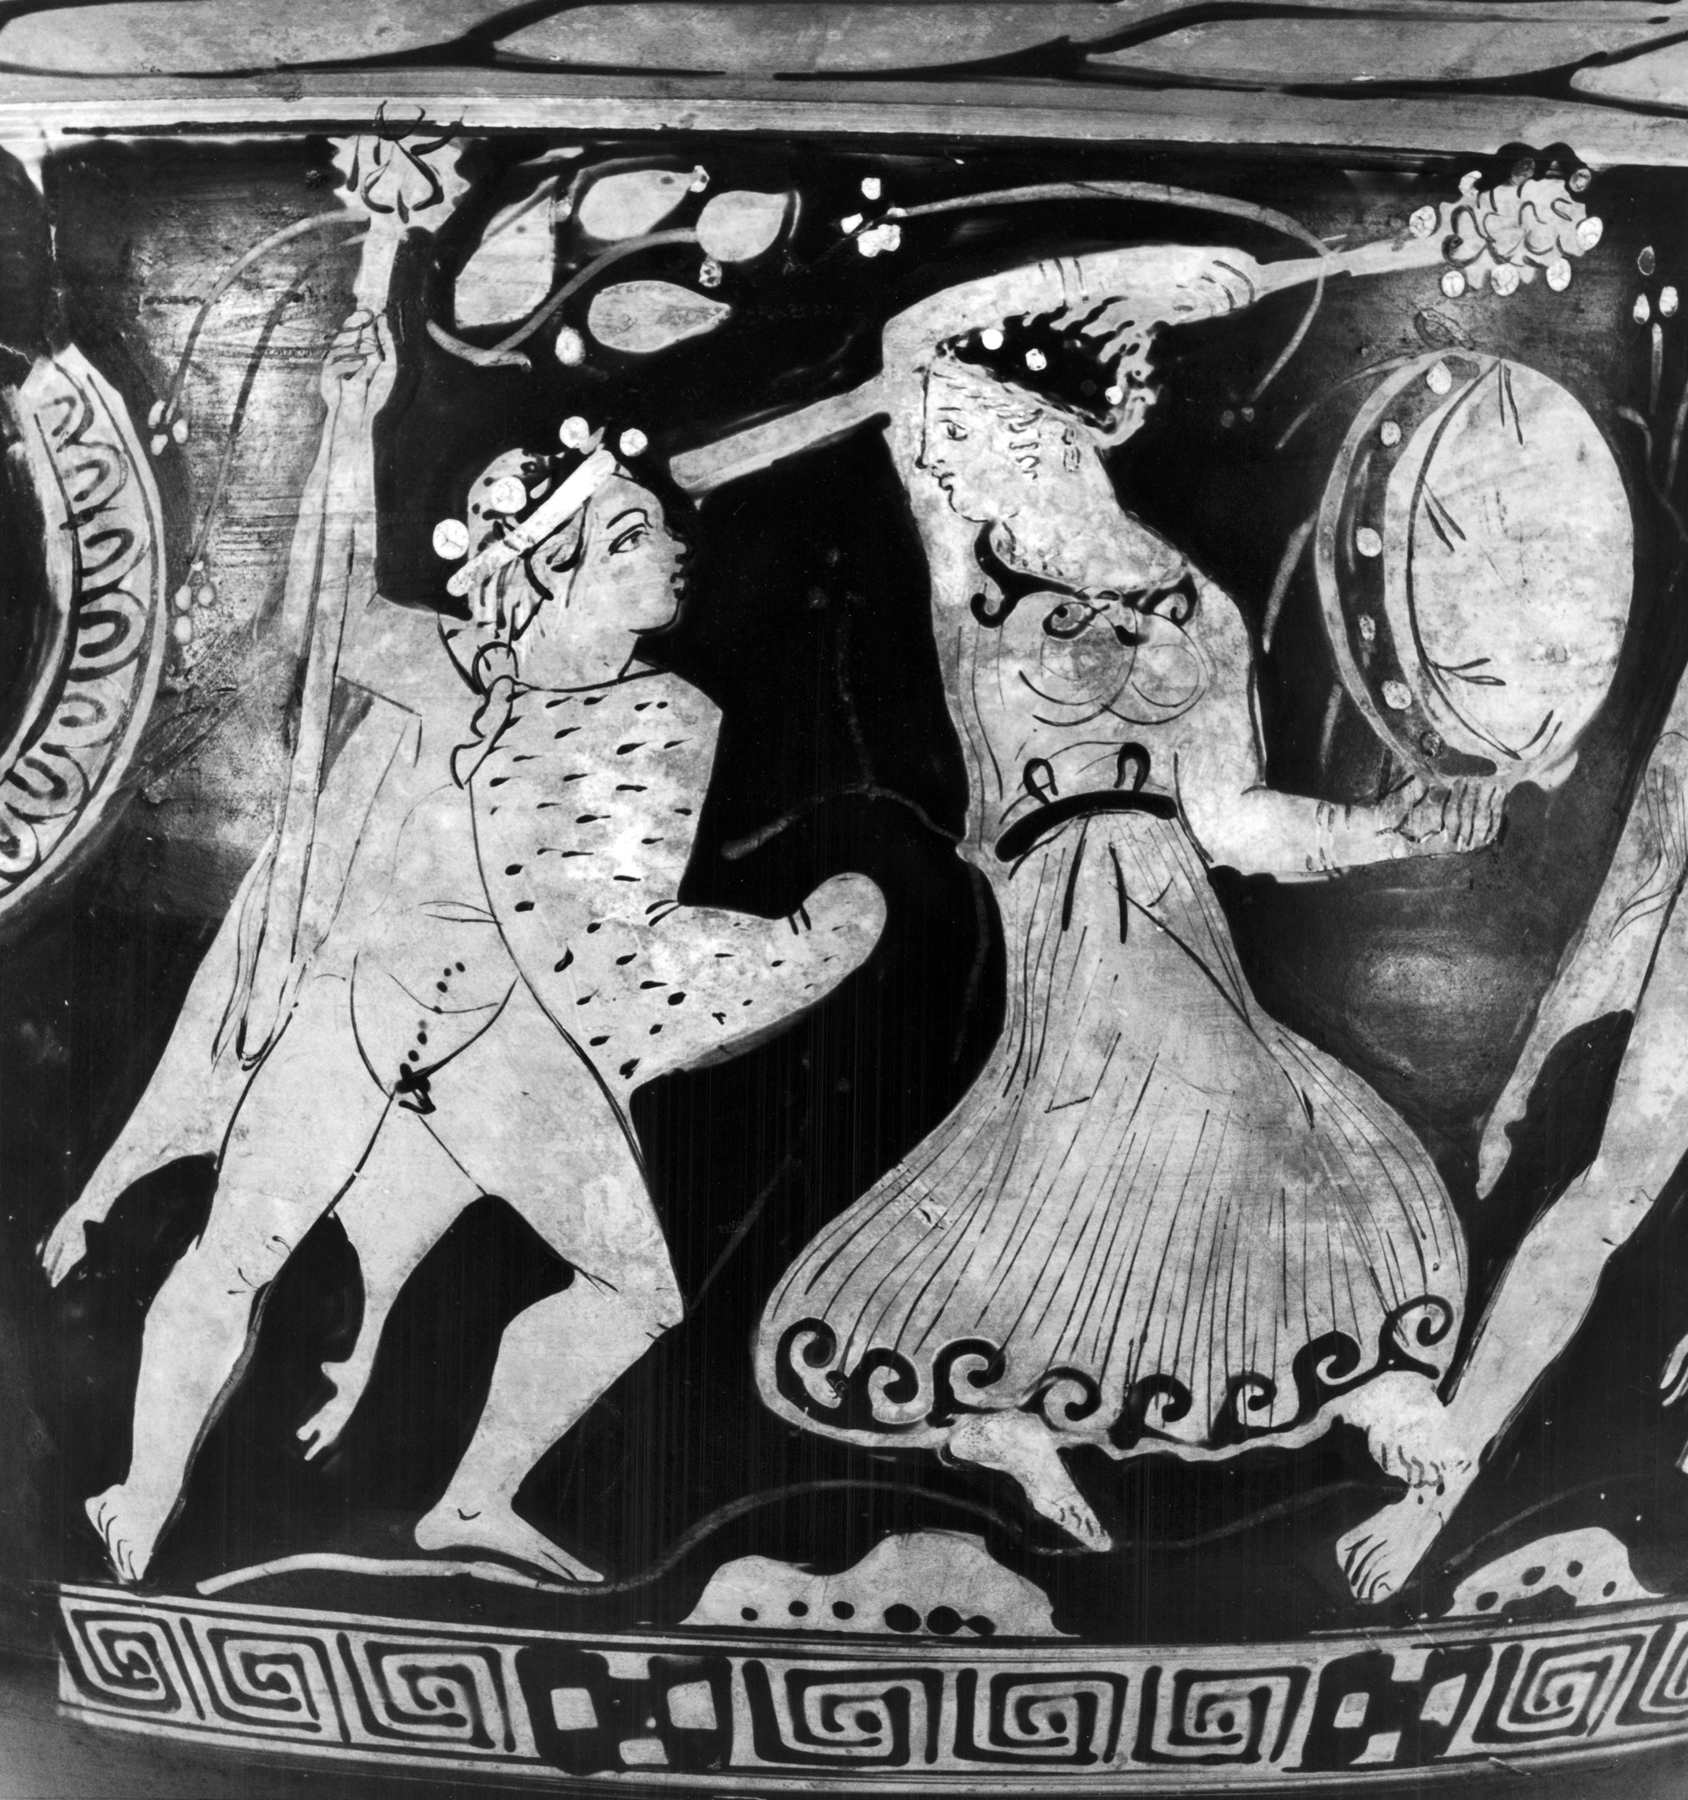 Walters-Dresden_Painter_-_Bell-Krater_with_Satyrs_and_Maenads_and_Three_Draped_Men_-_Walters_4875_-_Side_A_Detail.jpg